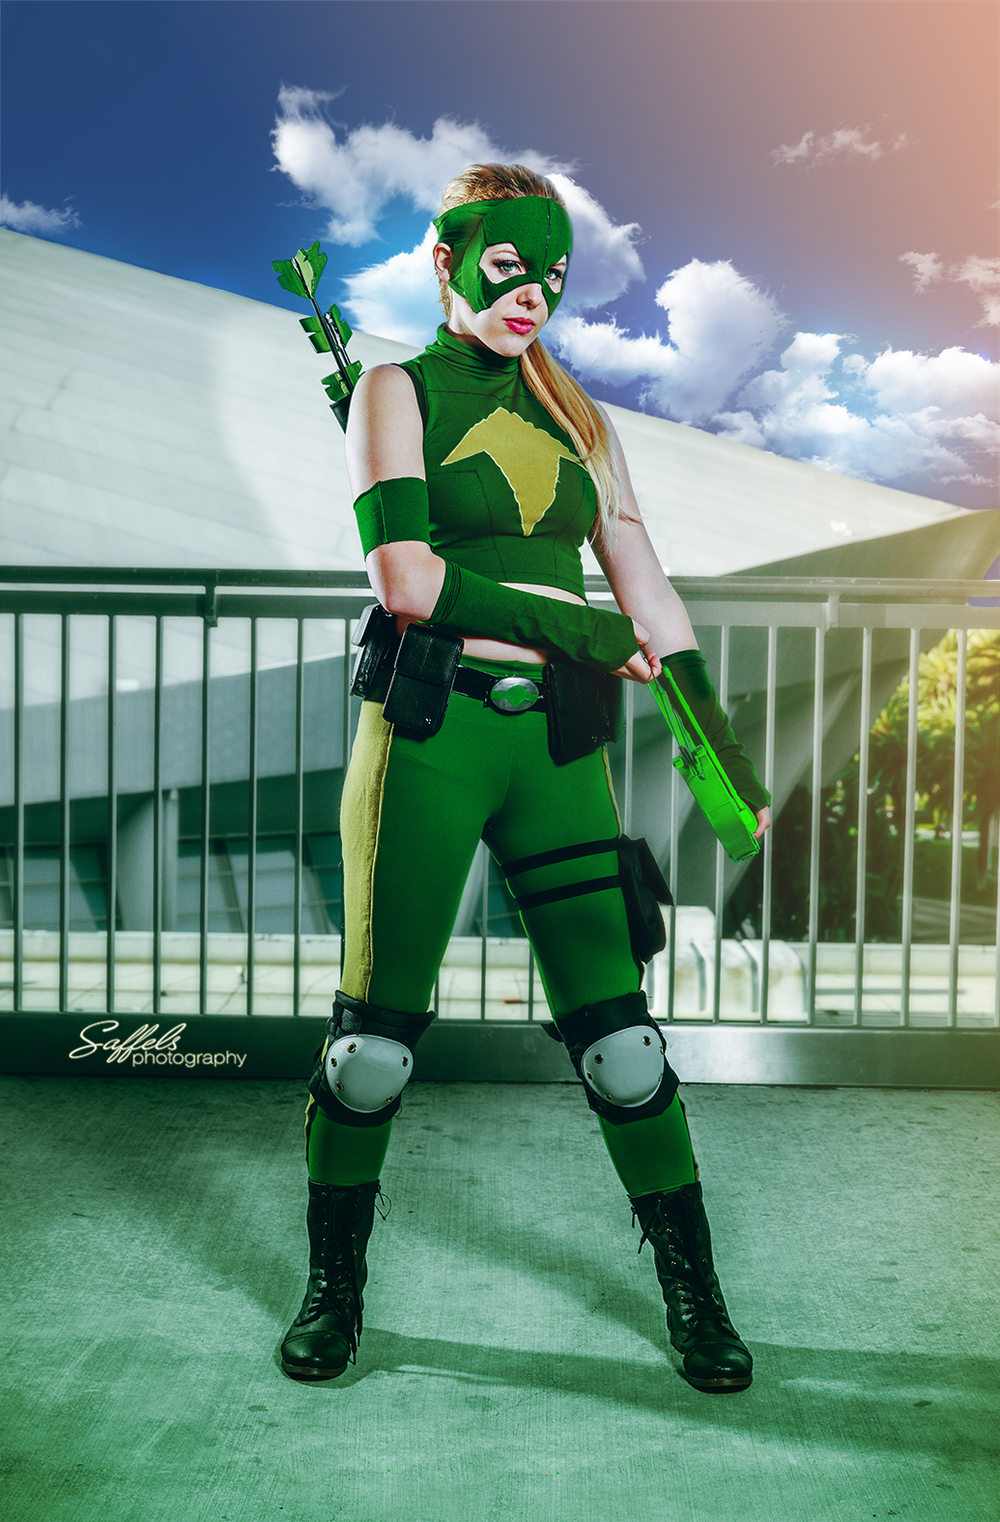 Courtoon as Artemis from Young Justice!